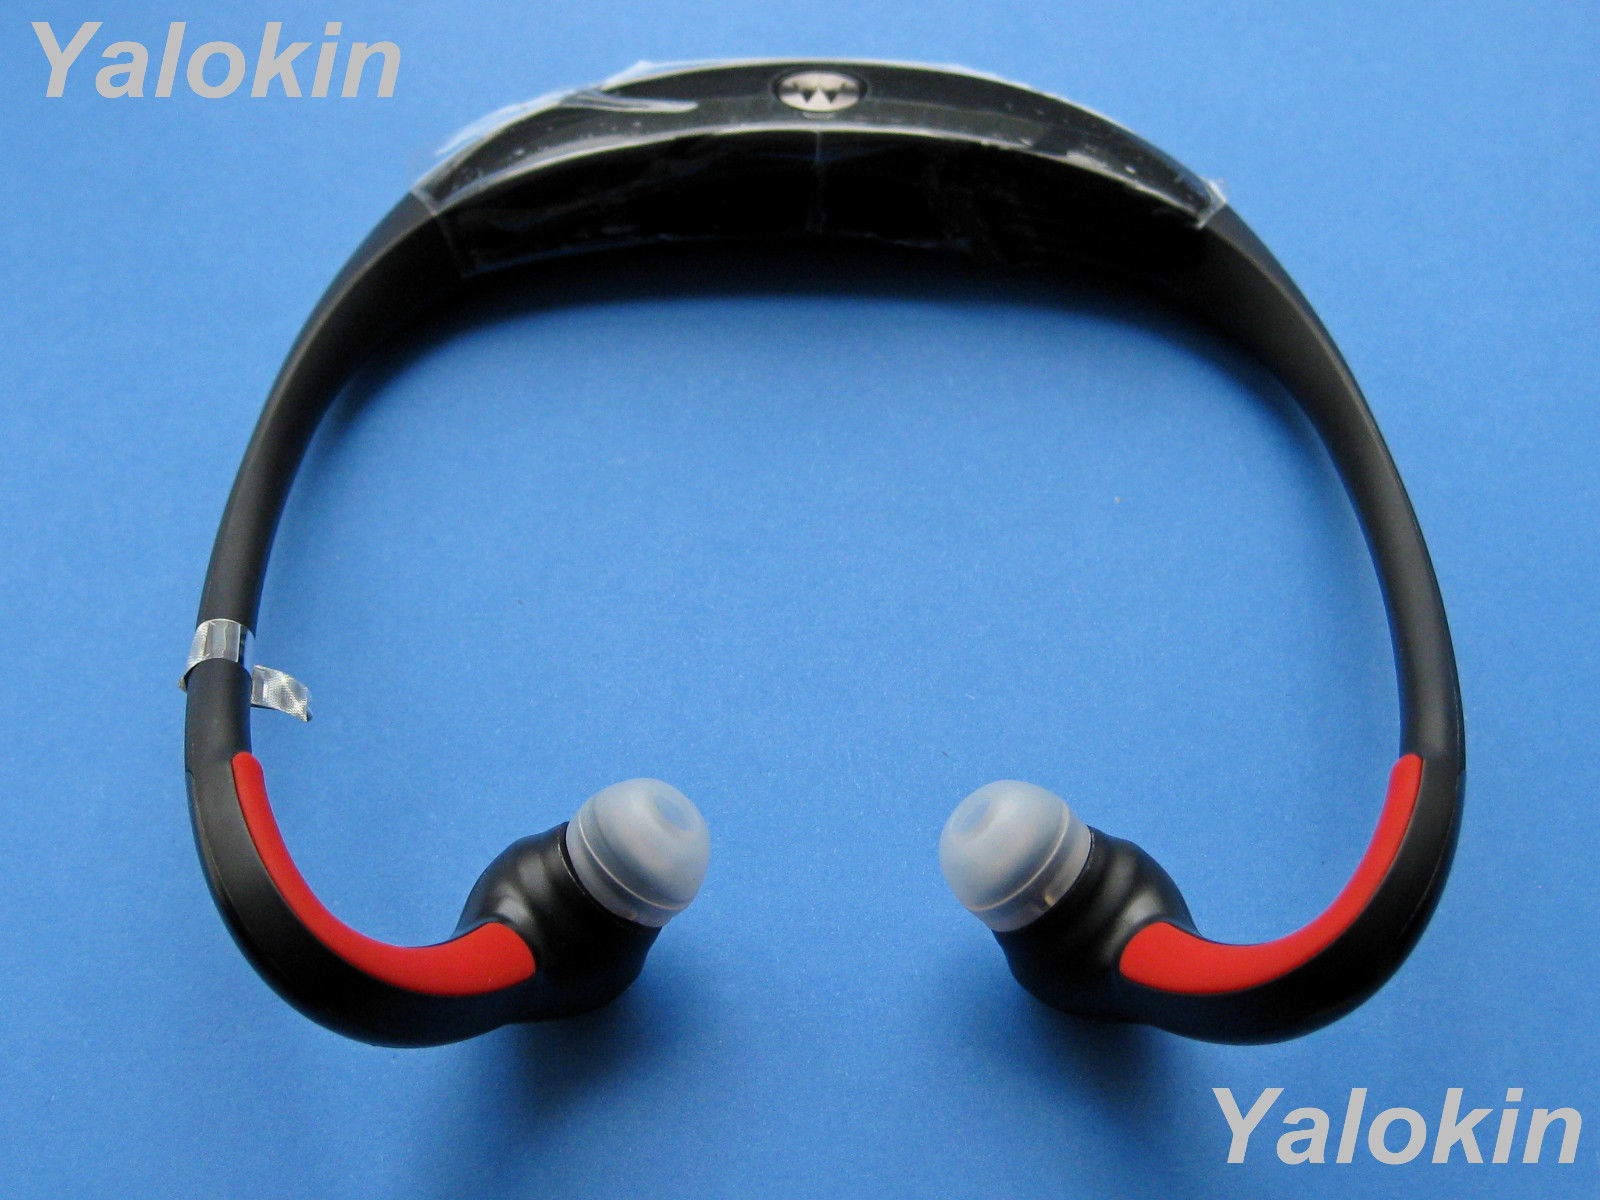 8 Small (CL) Replacement Ear tips buds Adapters for Motorola S10 S-10 Headphones